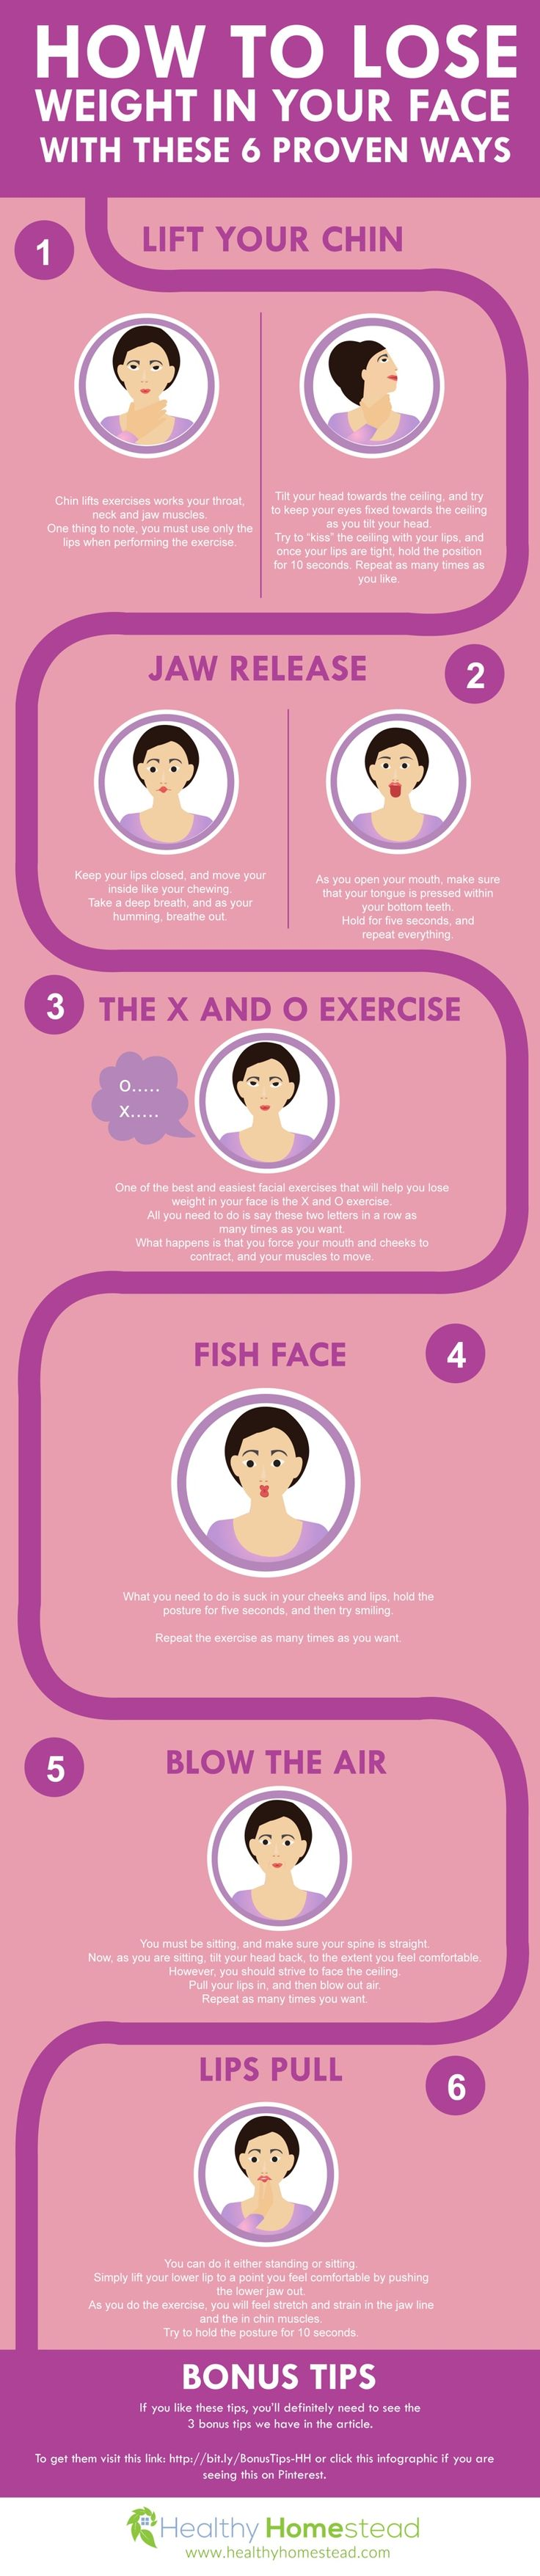 How to Lose Weight in Your Face With These 6 Proven Ways